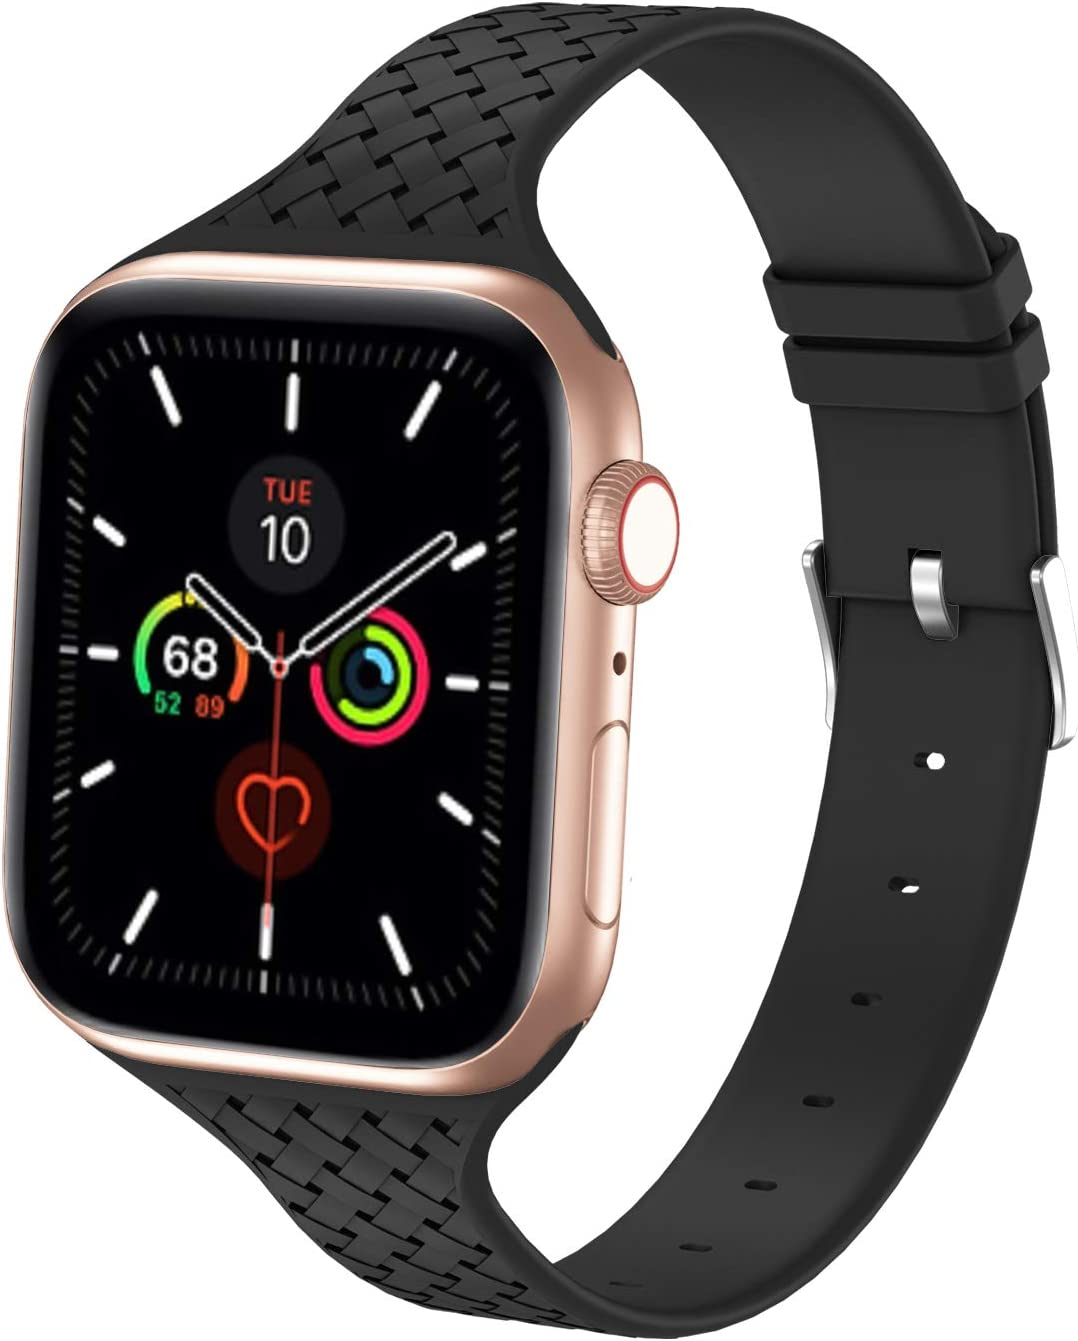 Bagoplus Sport Bands Compatible with Apple Watch Band 40MM 38MM,Silicone Slim Thin Narrow iWatch Bands 38MM 40MM Compatible for iWatch SE & Series 6 5 4 3 2 1